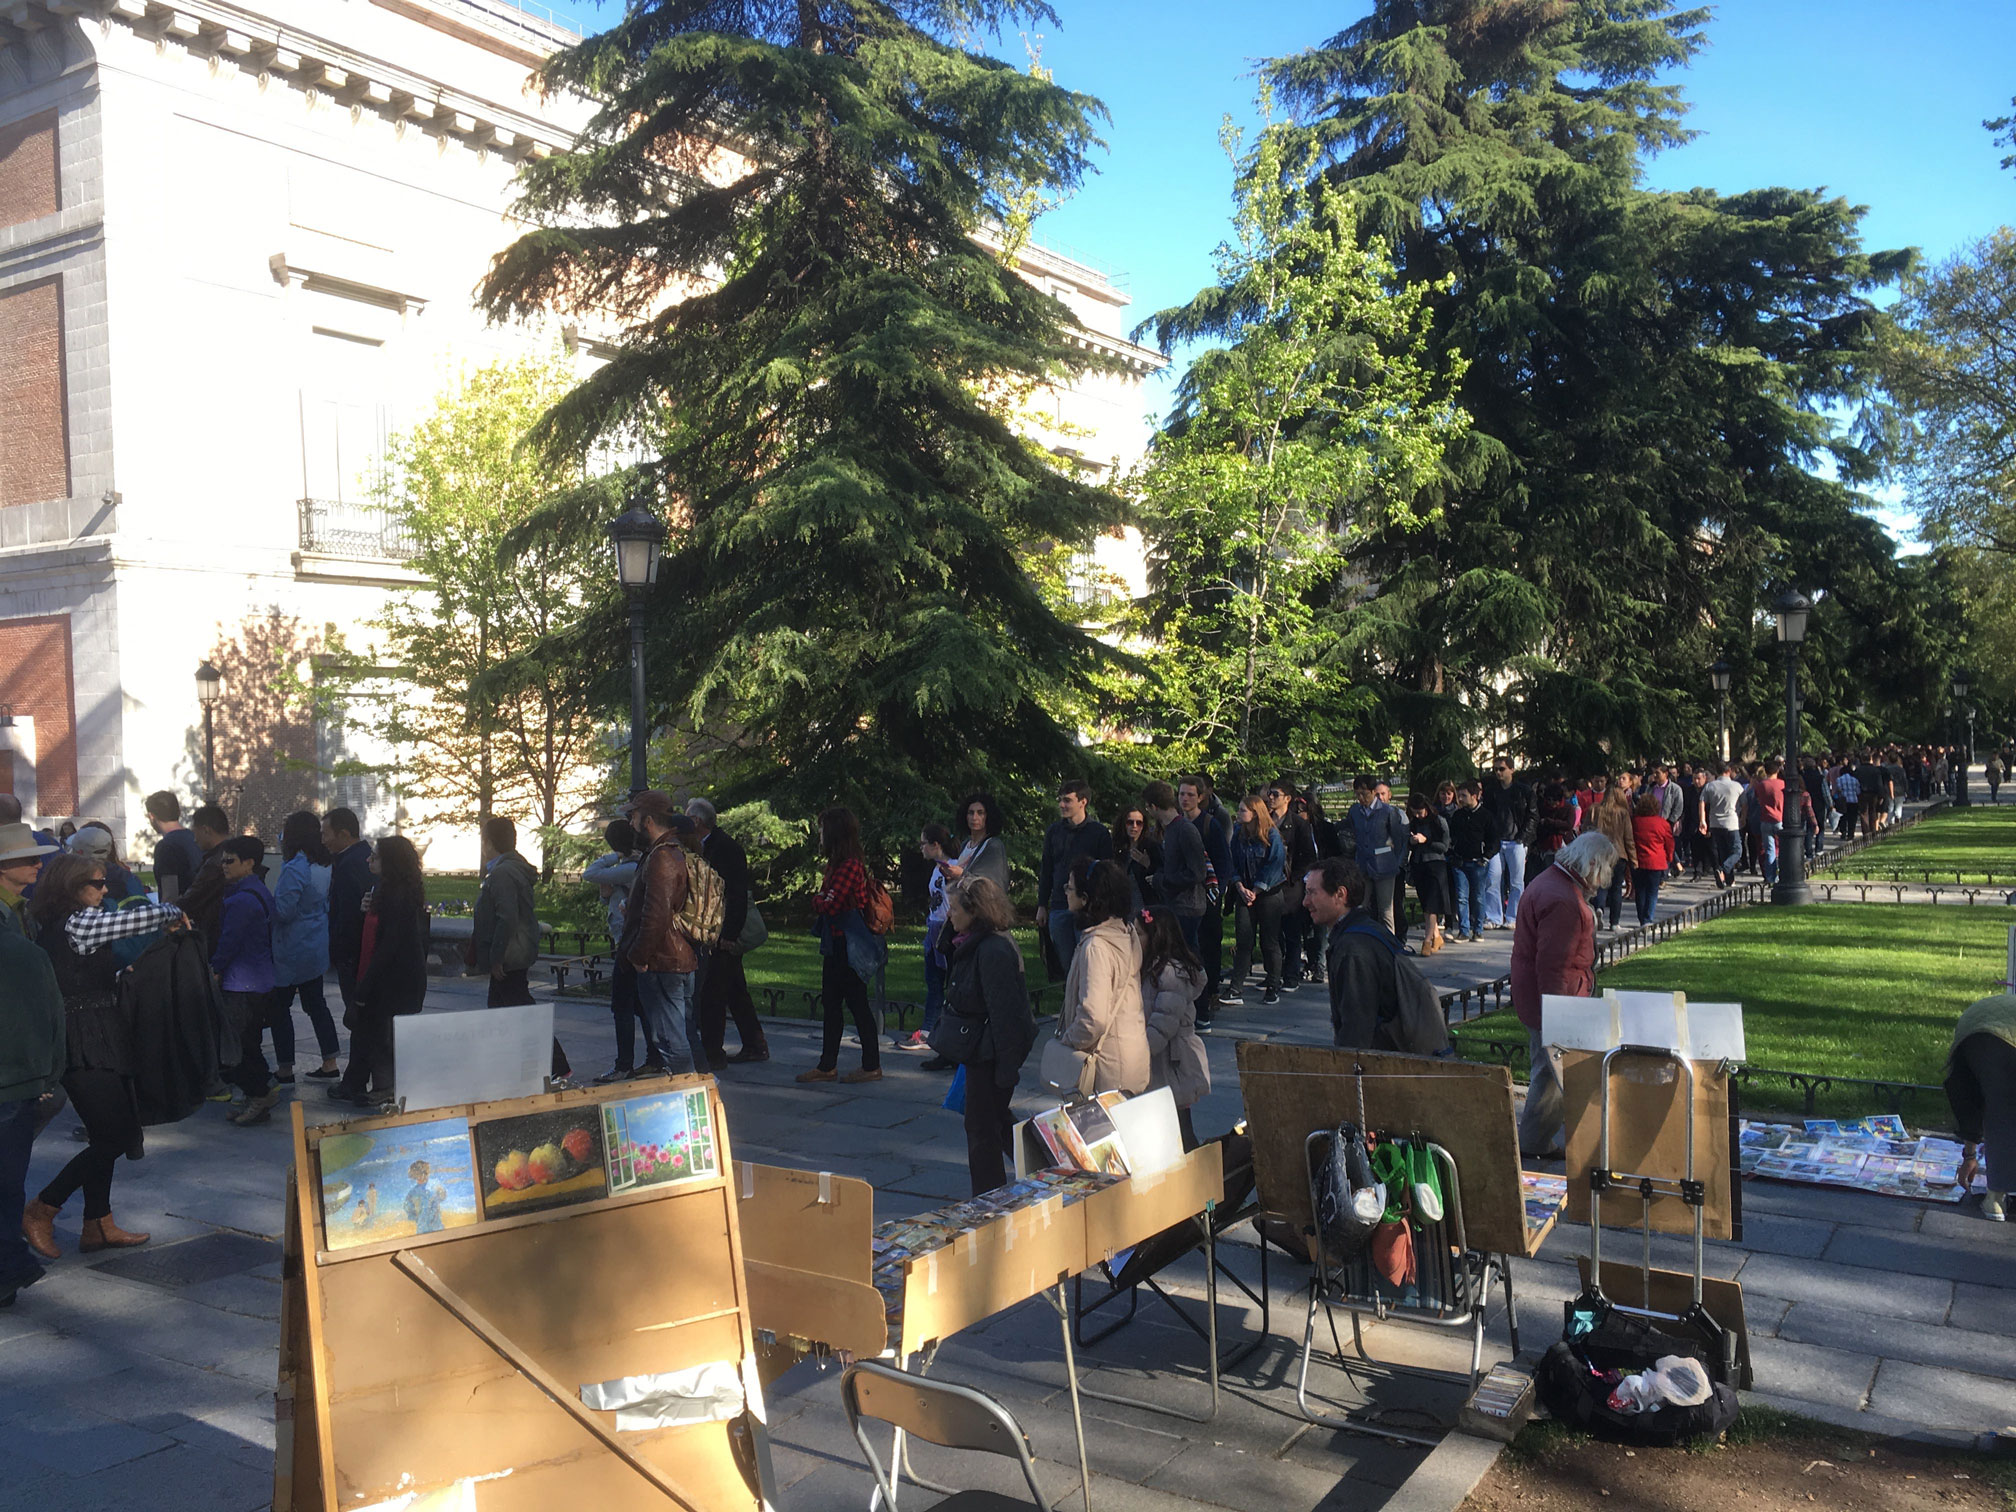 The Prado is one of the most important, and popular, museos in the world. Here are some queues on the first of May to prove it!